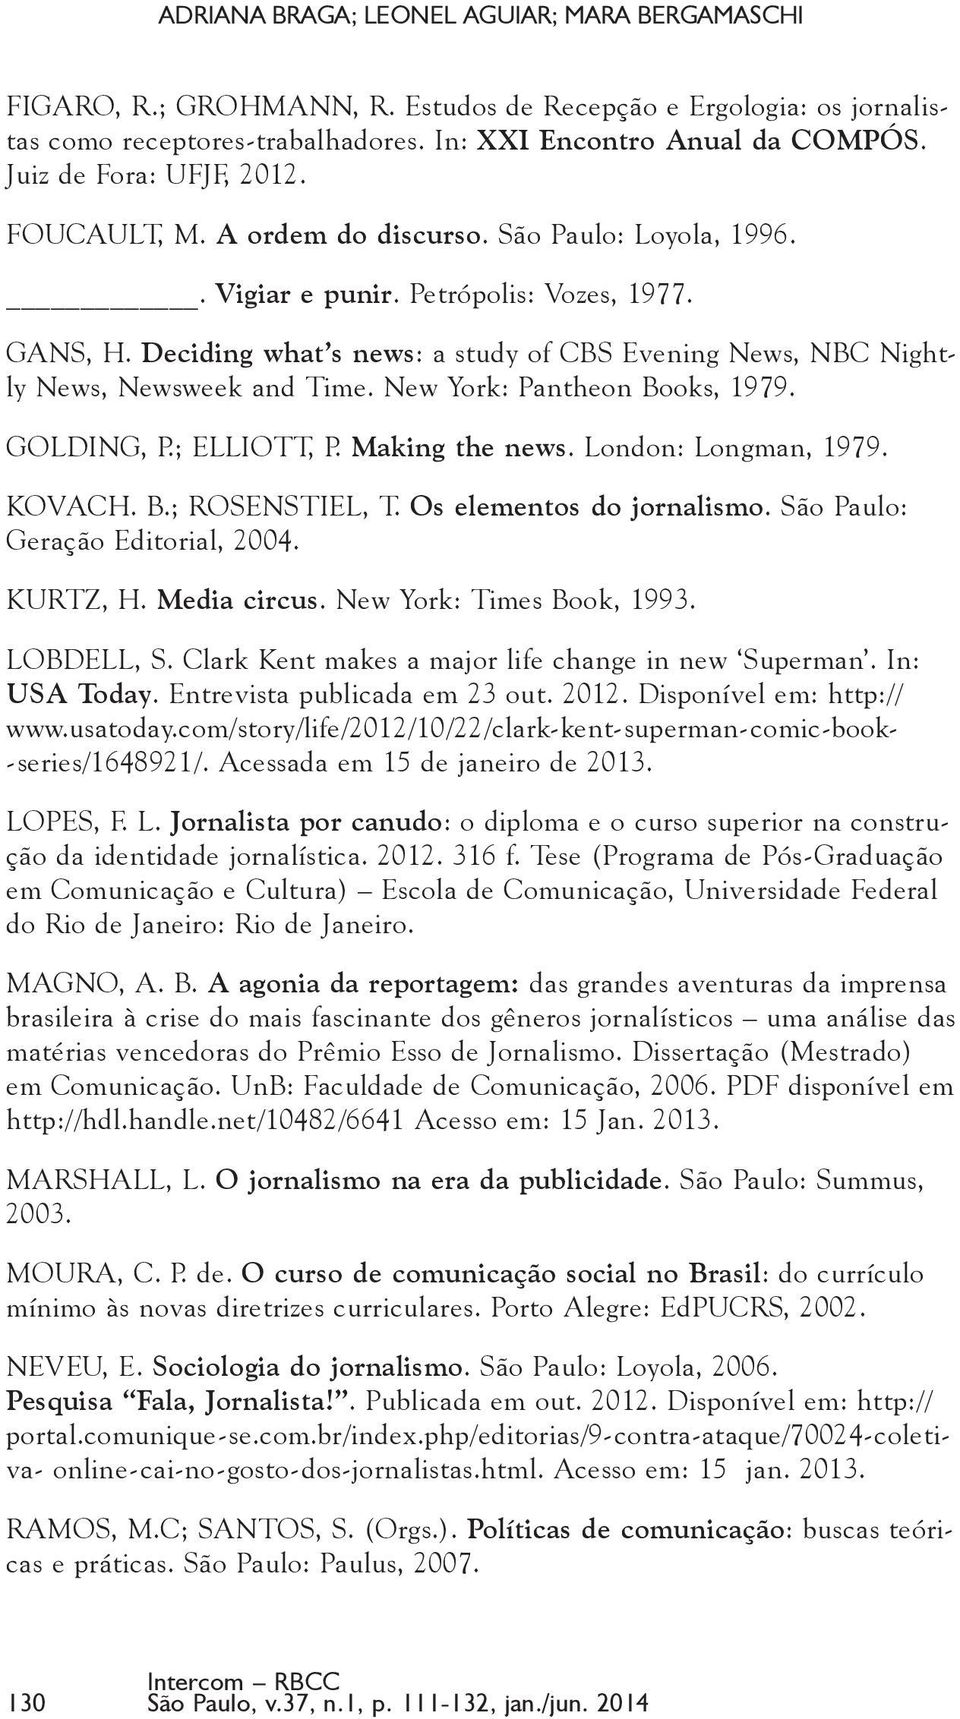 Deciding what s news: a study of CBS Evening News, NBC Nightly News, Newsweek and Time. New York: Pantheon Books, 1979. GOLDING, P.; ELLIOTT, P. Making the news. London: Longman, 1979. KOVACH. B.; ROSENSTIEL, T.